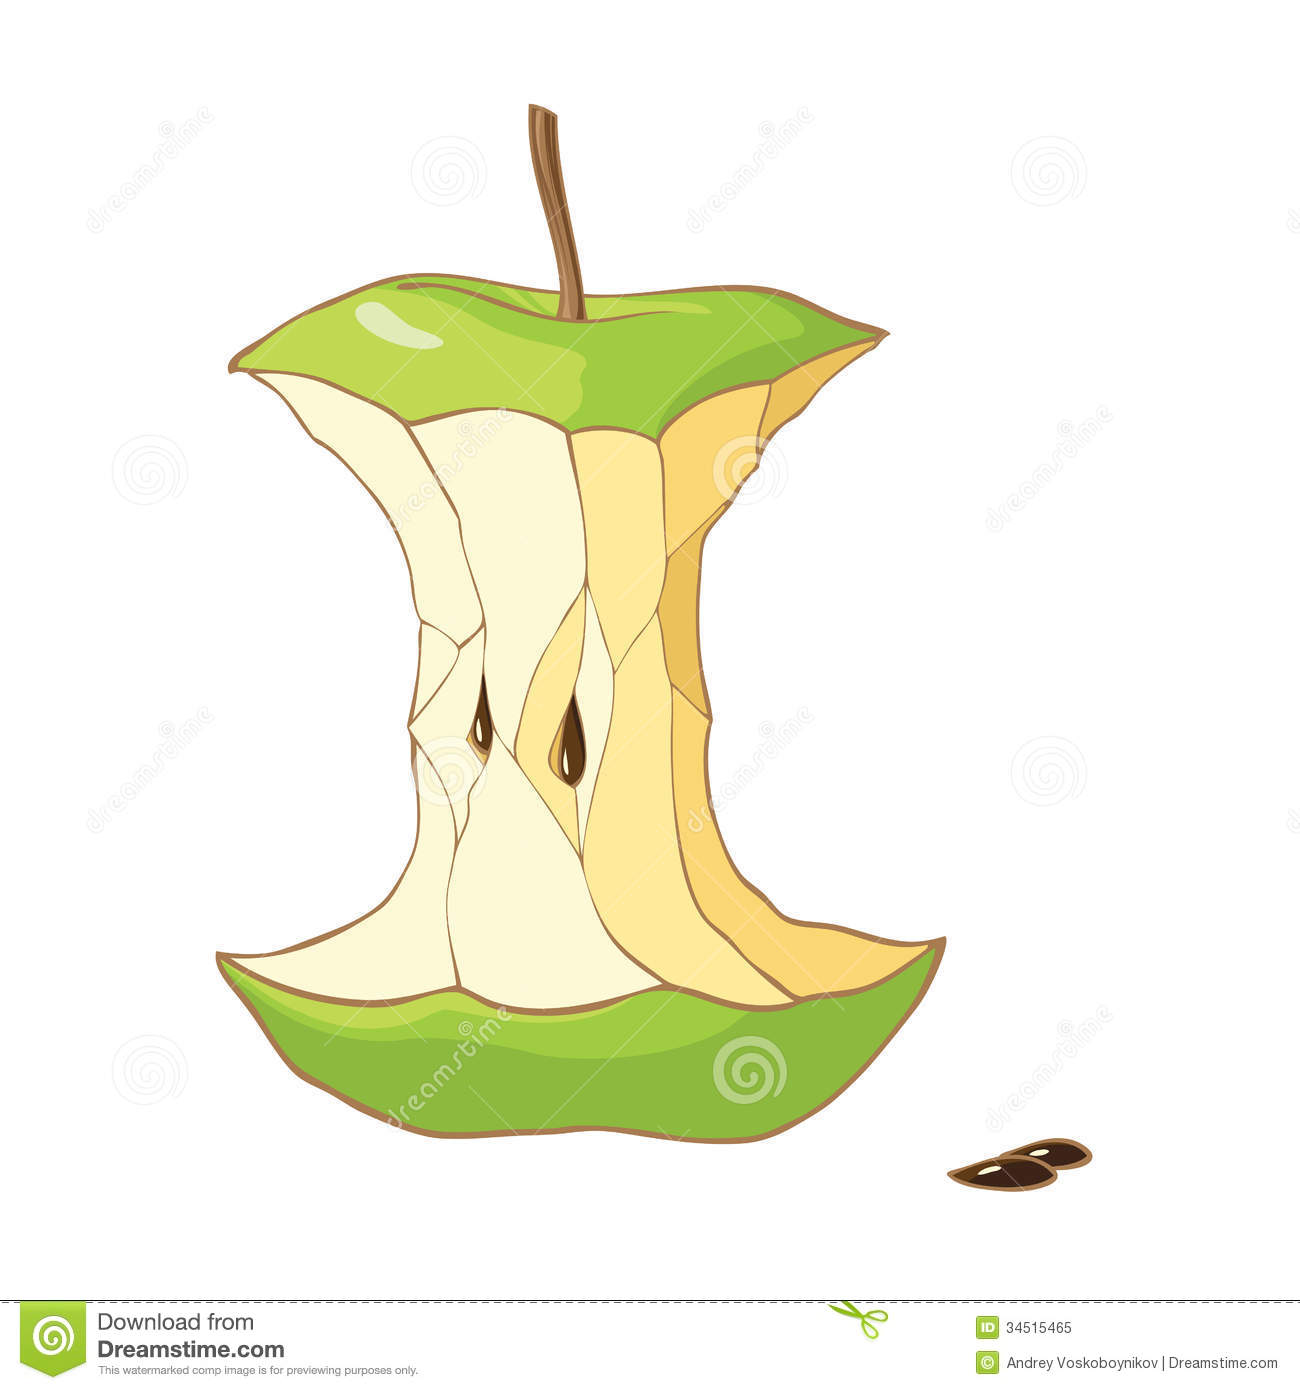 Green Apple Core Royalty Free Stock Photo - Image: 34515465